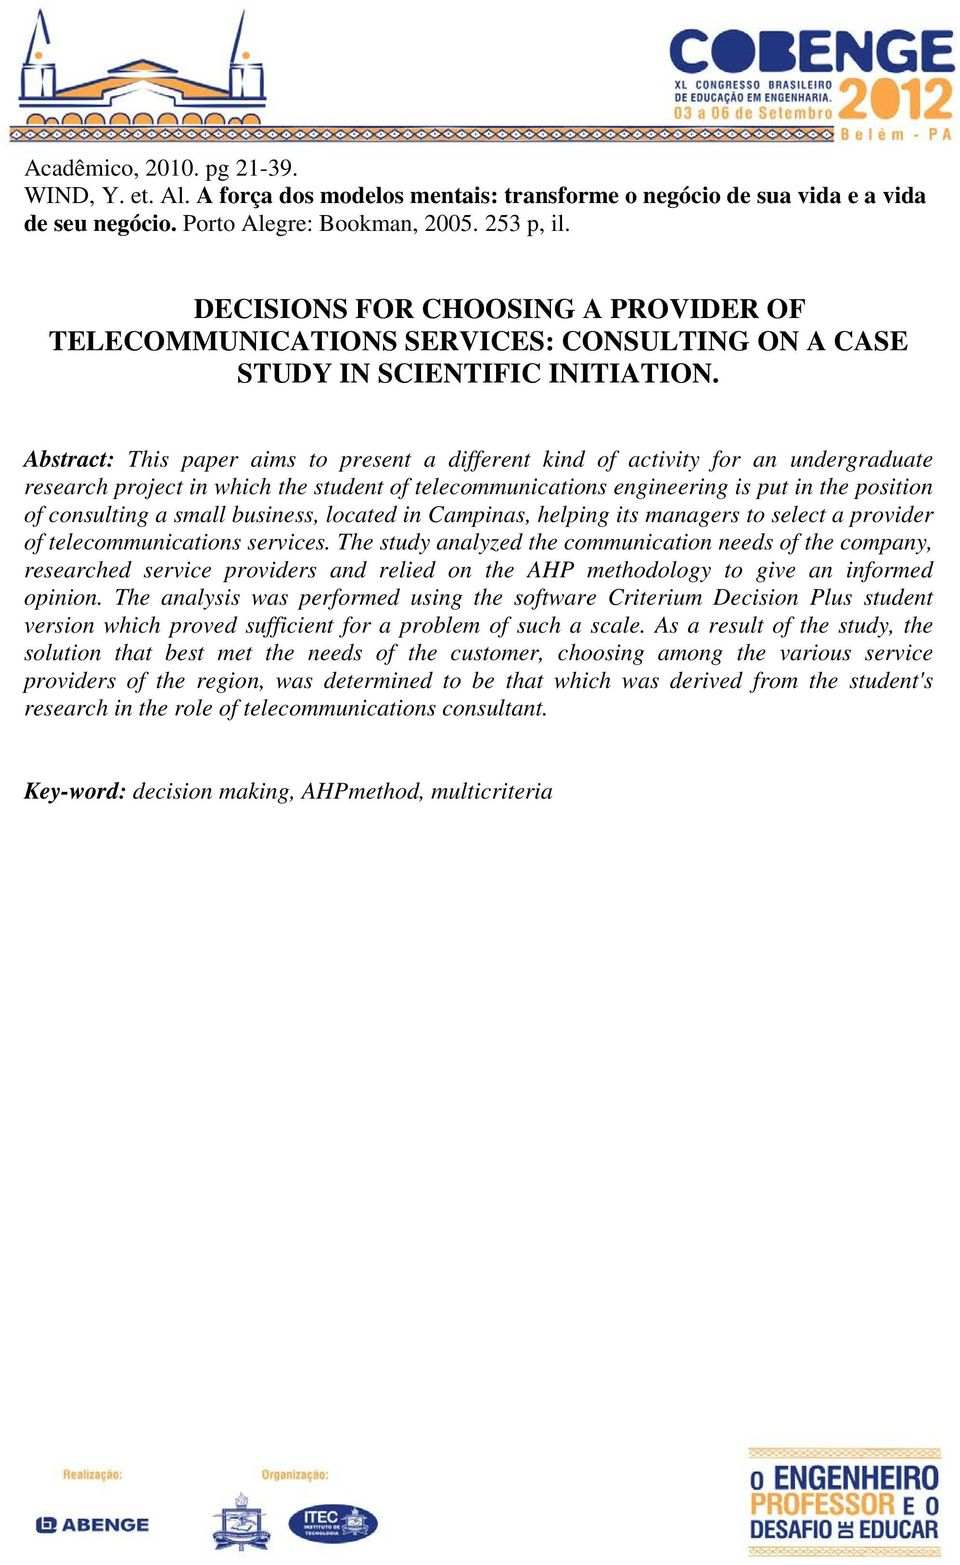 Abstract: This paper aims to present a different kind of activity for an undergraduate research project in which the student of telecommunications engineering is put in the position of consulting a